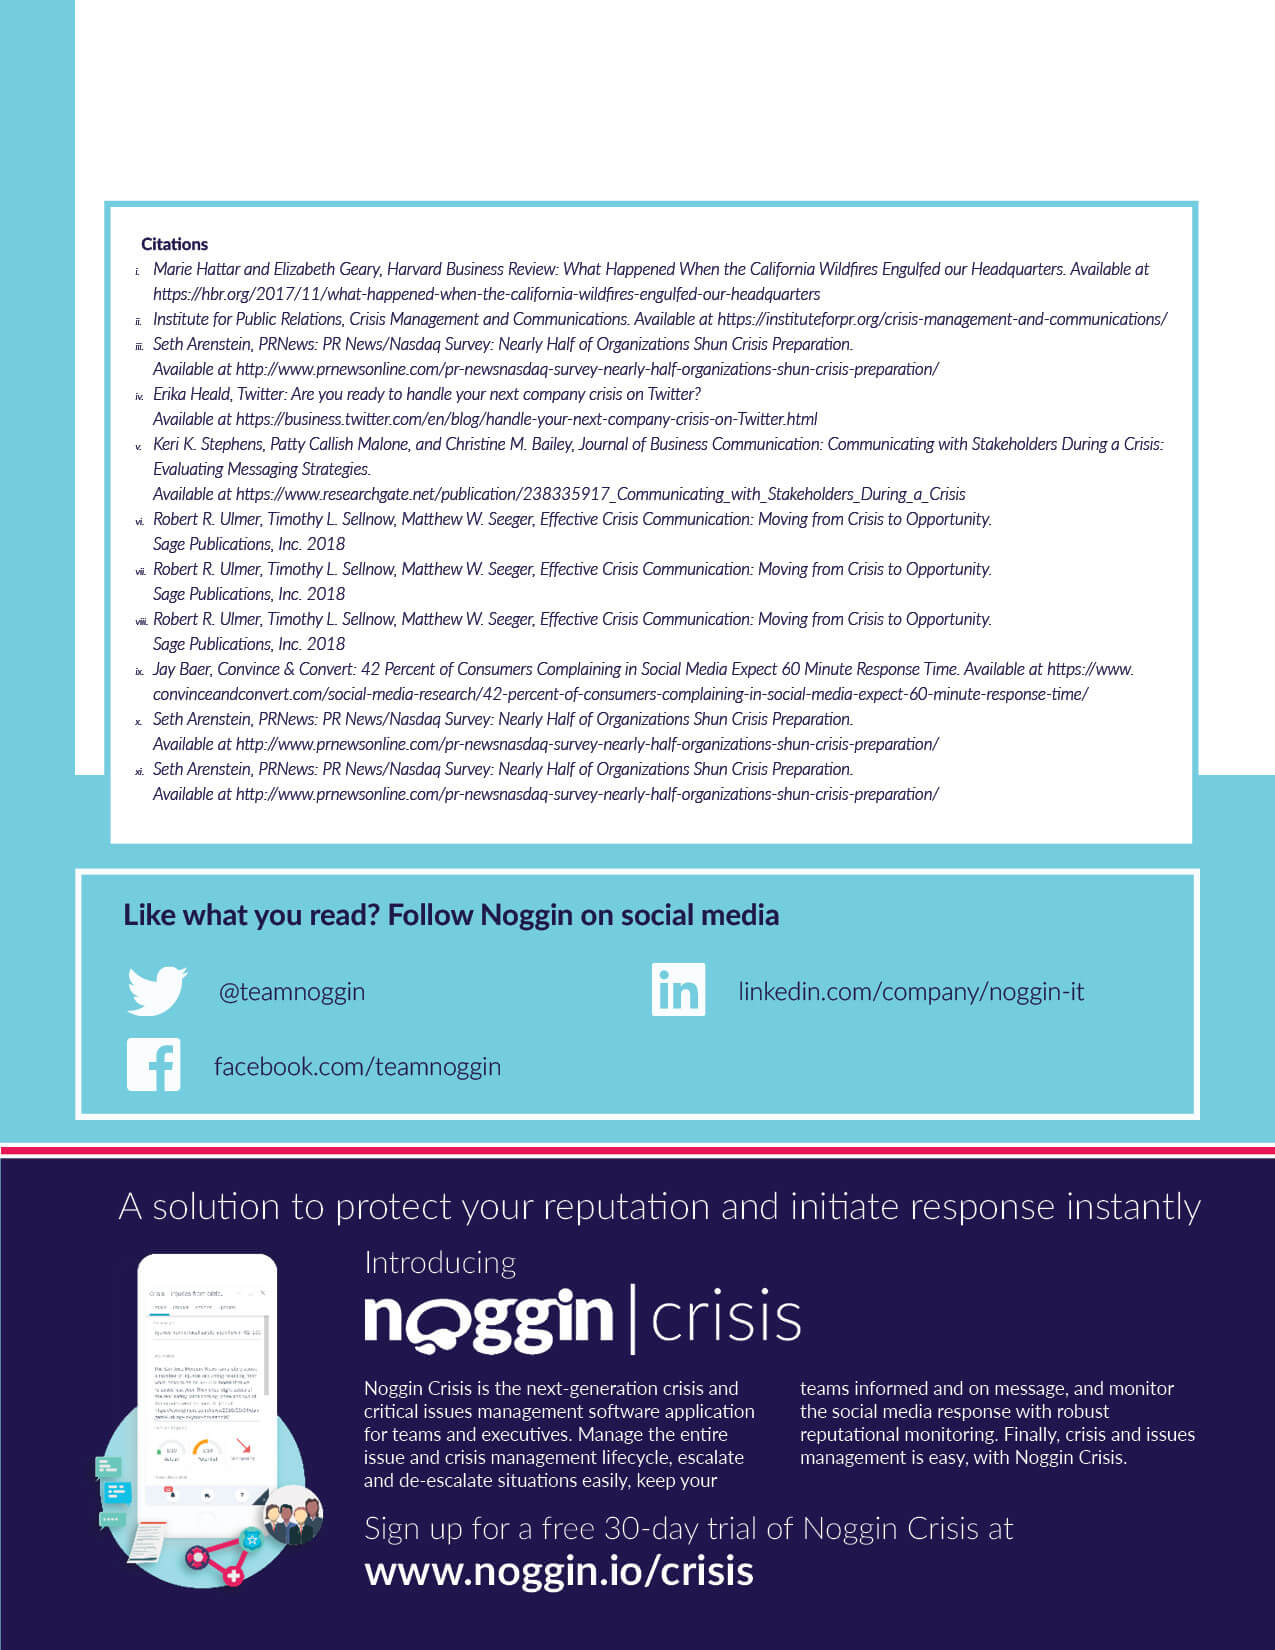 Noggin white paper guide on Effective Crisis Communication. This was created to drive marketing qualified leads for the Noggin Crisis product from the website. Page 9 of 9